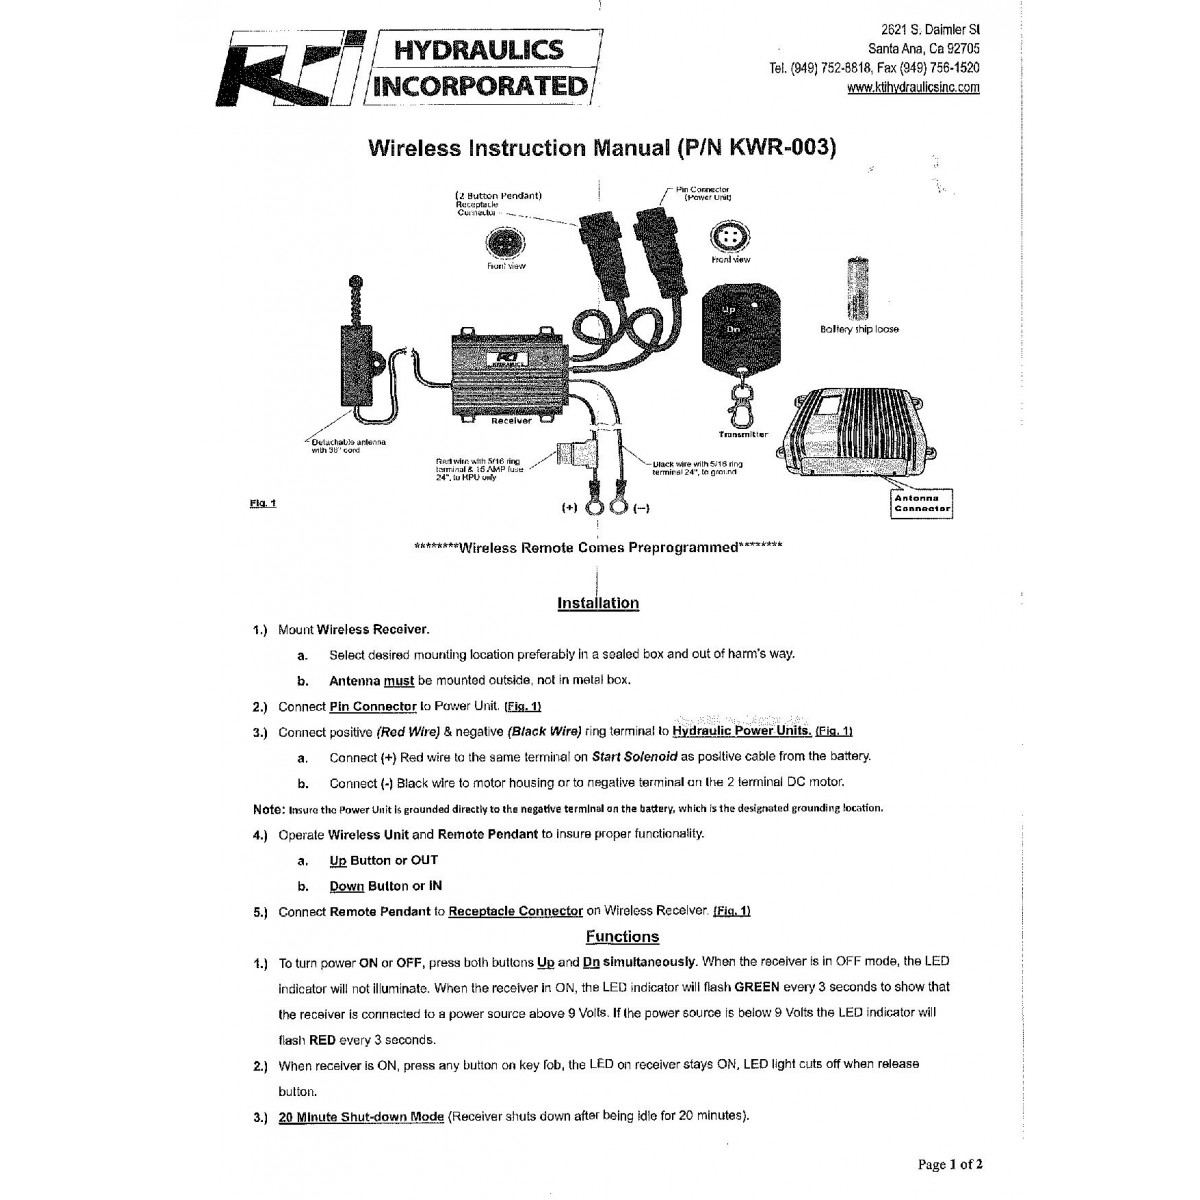 KTI Wireless Remote New - Kti hydraulic pump wiring diagram